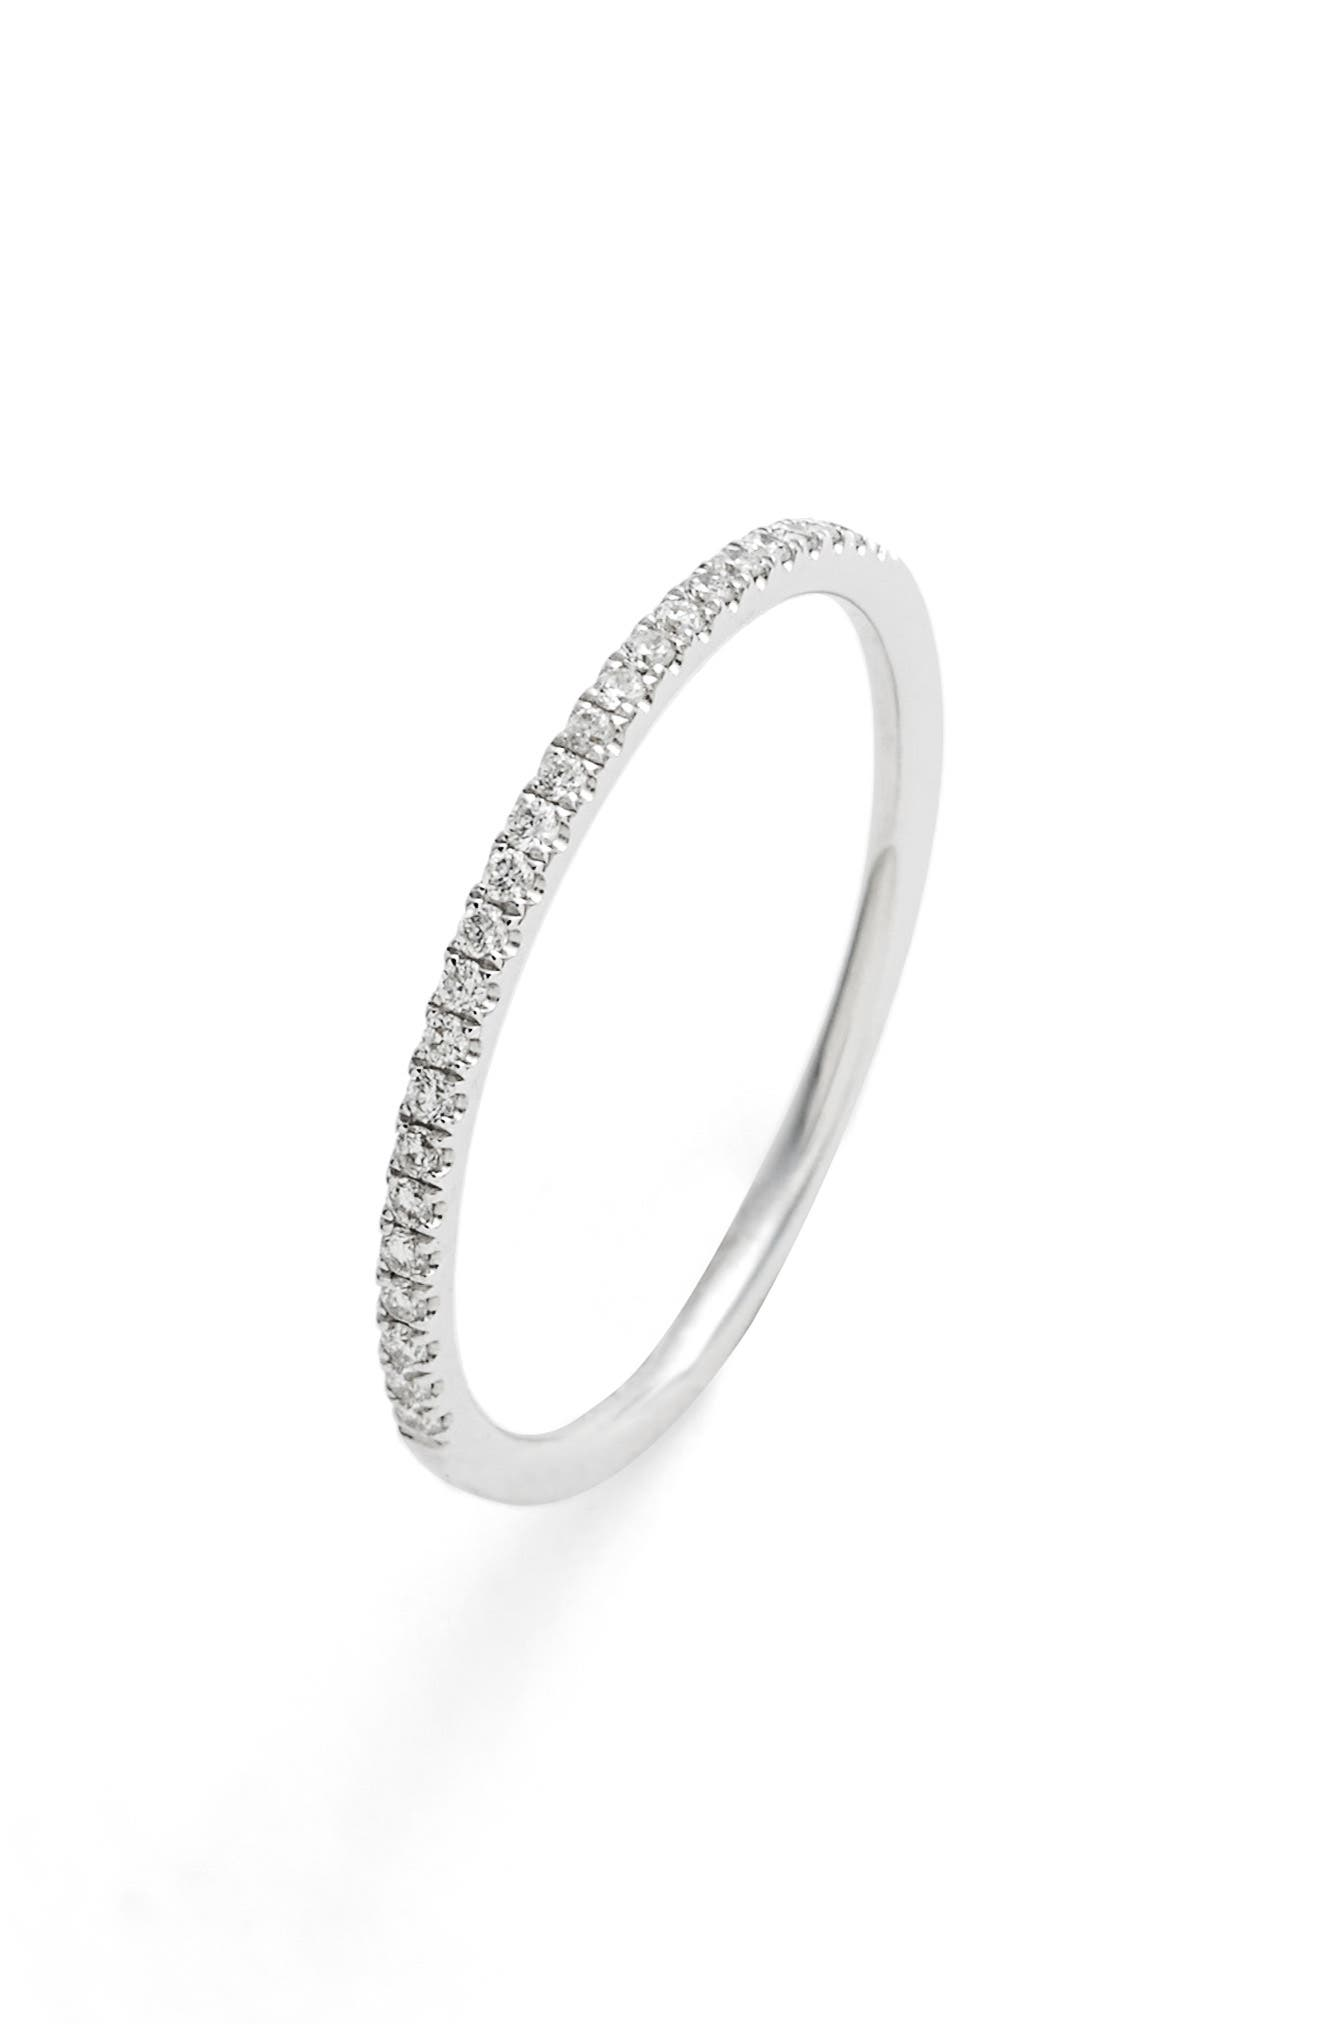 BONY LEVY, Stackable Straight Diamond Band Ring, Main thumbnail 1, color, WHITE GOLD